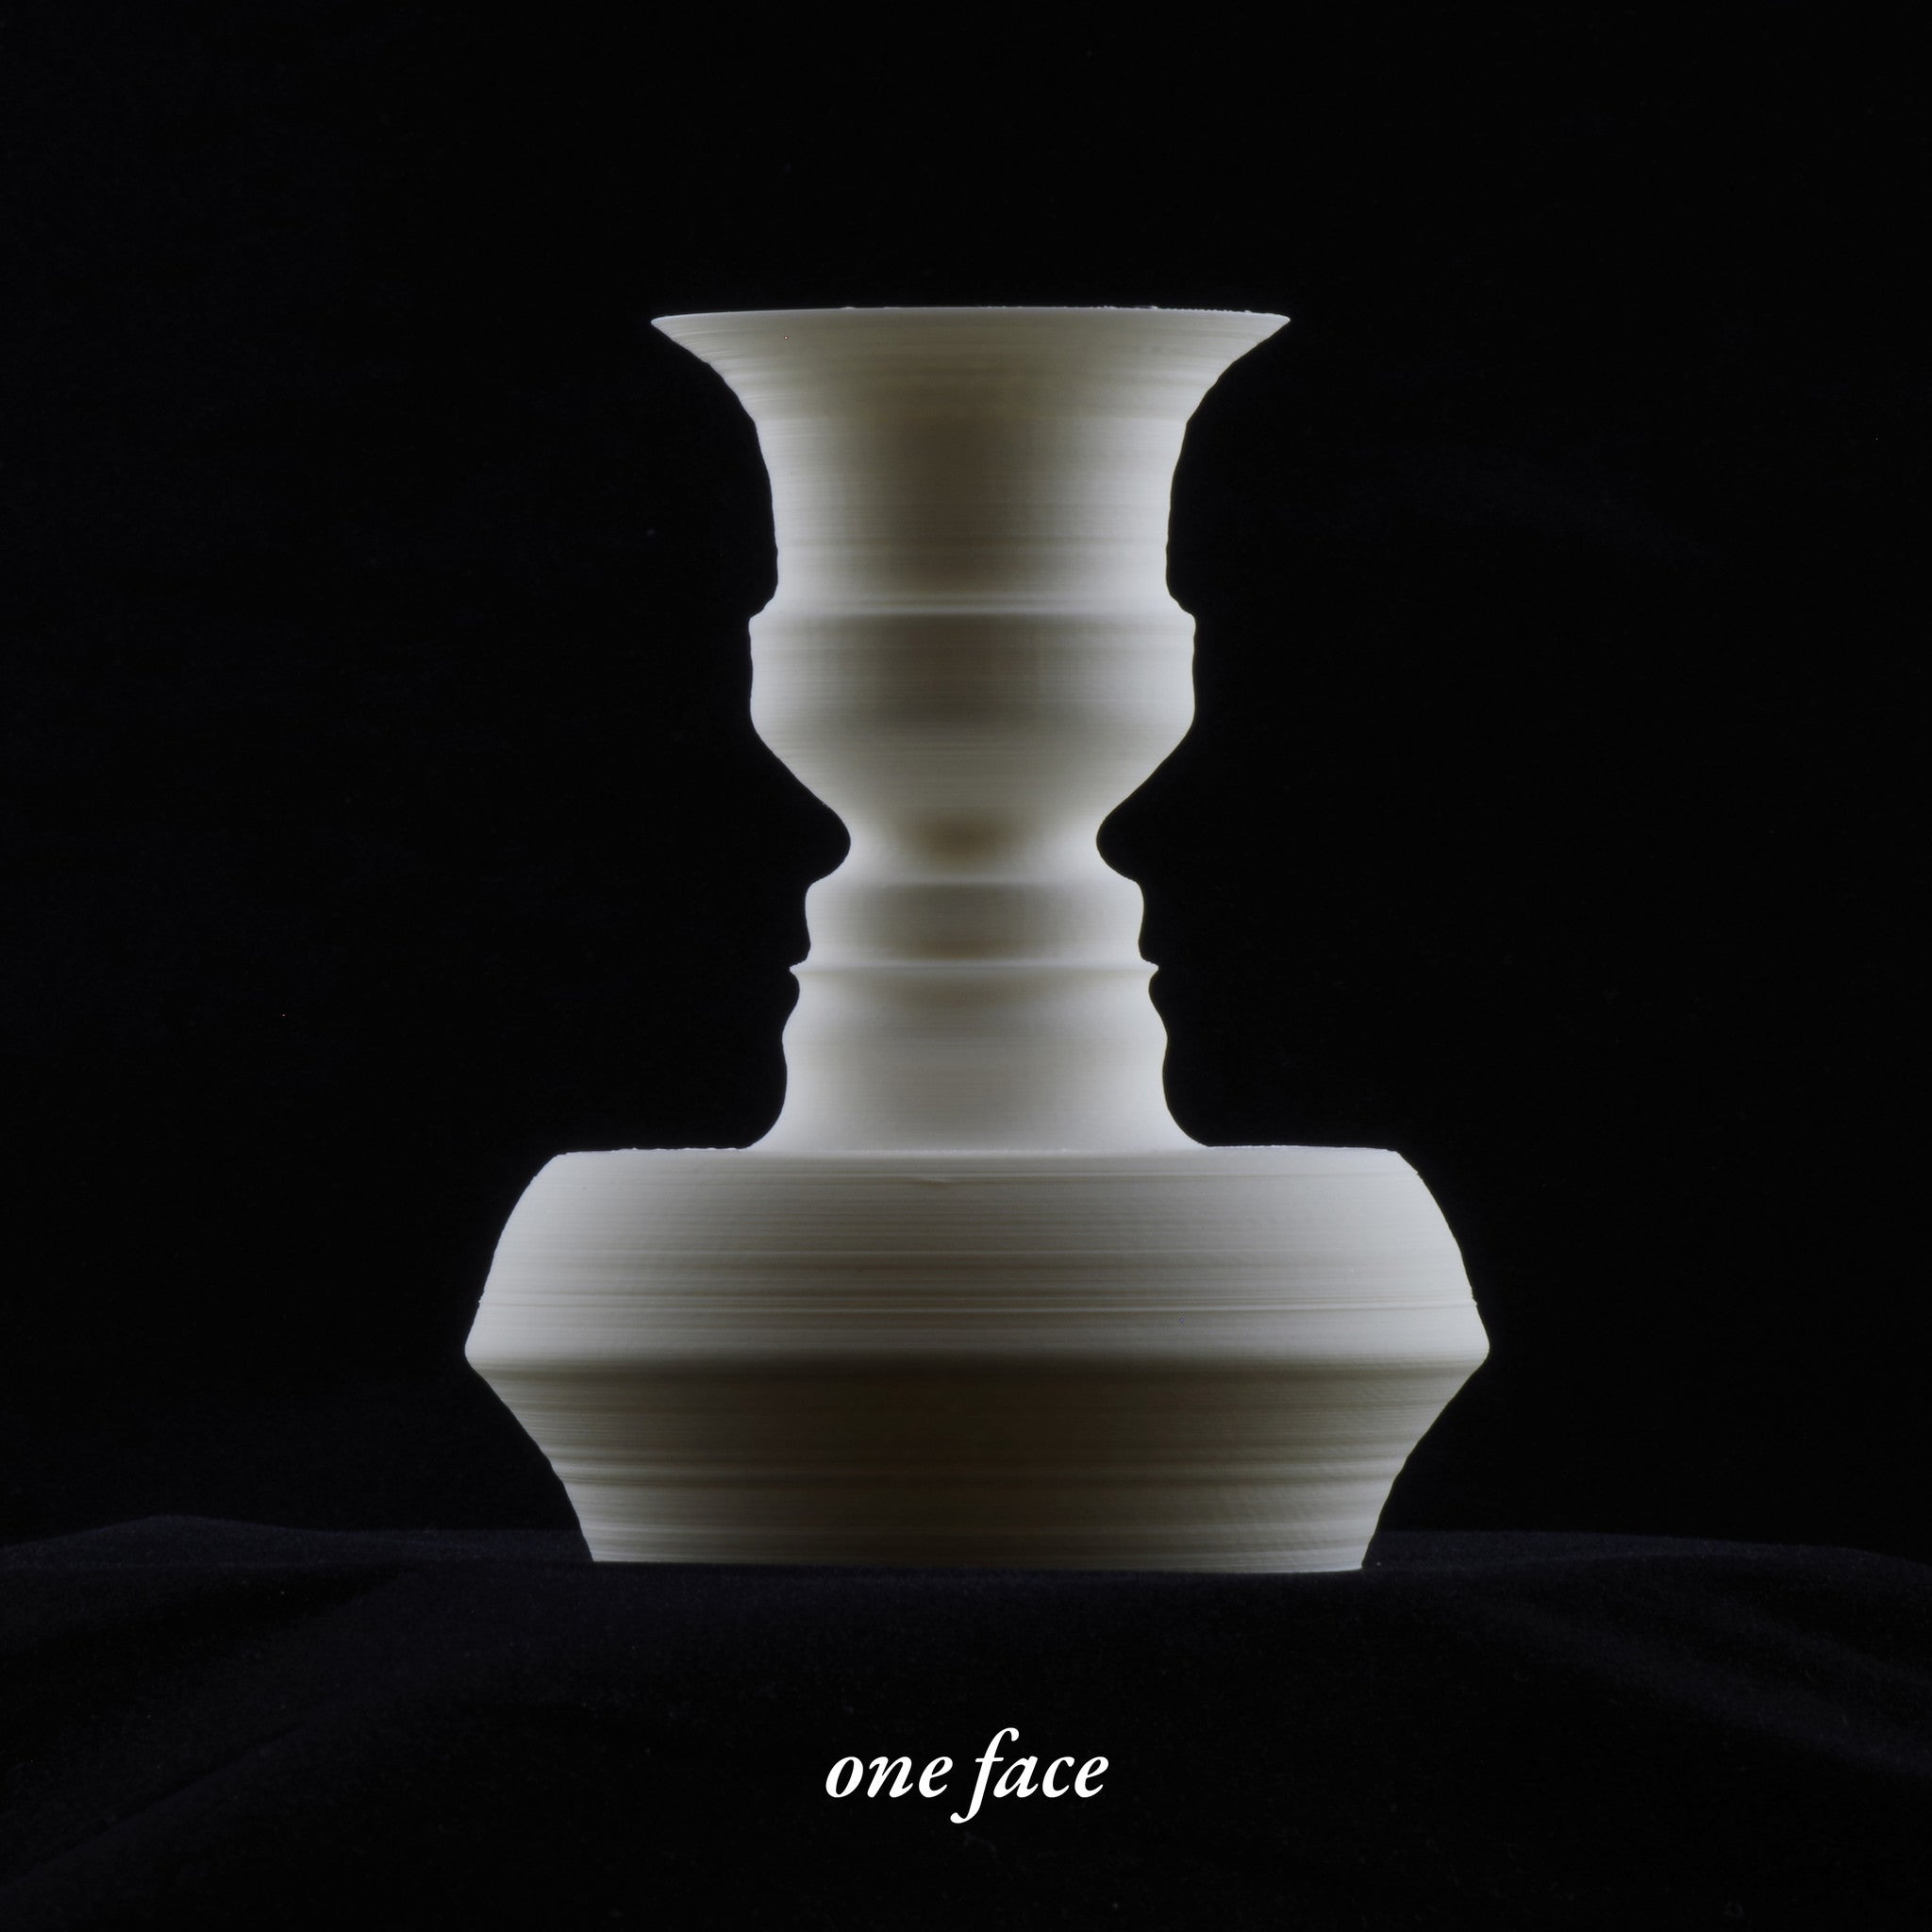 Fahz its your face in a vase custom 3d printed vase in white pla plastic 5 inch reviewsmspy